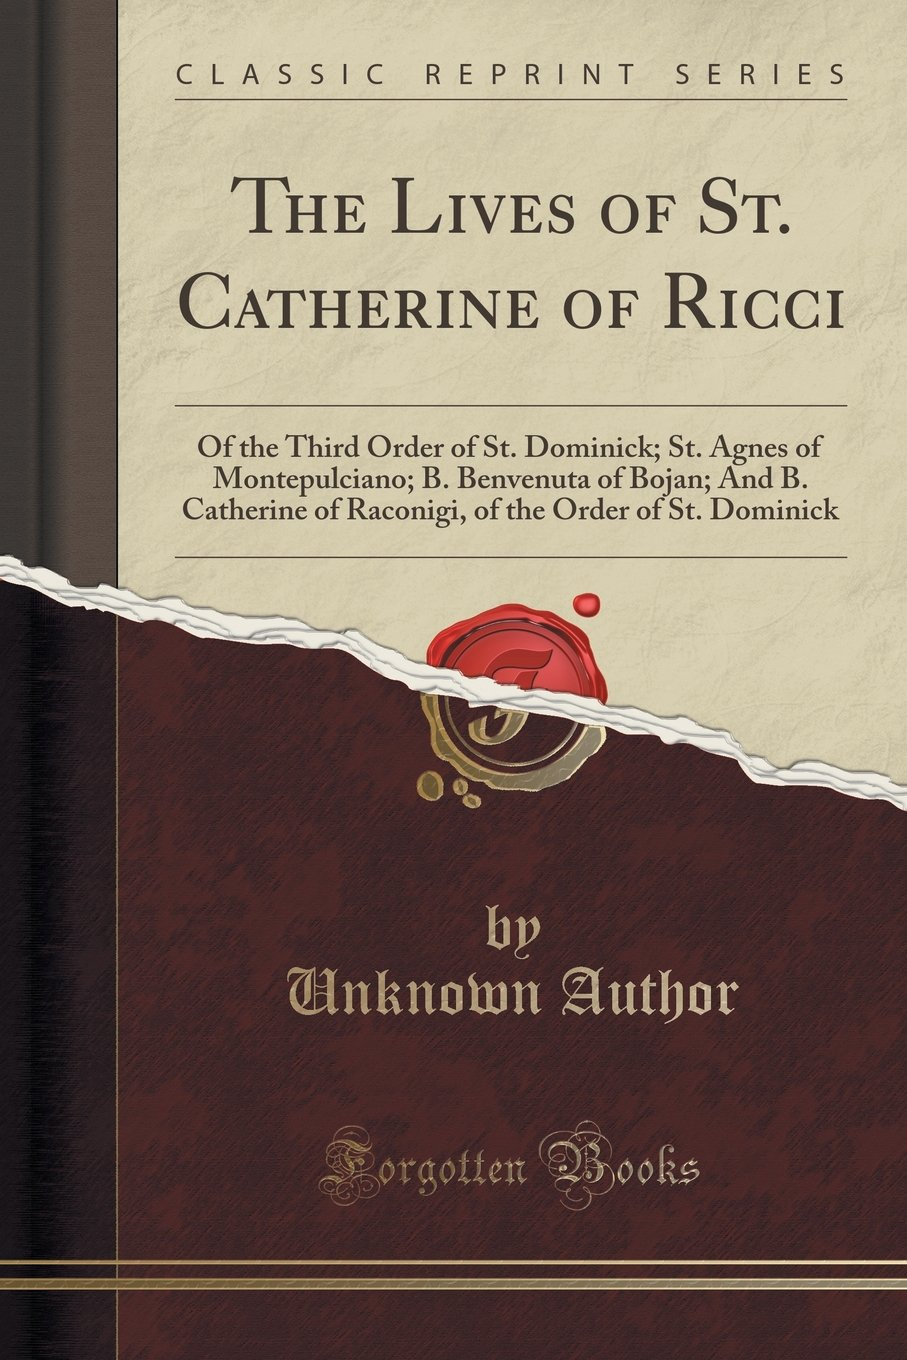 Download The Lives of St. Catherine of Ricci: Of the Third Order of St. Dominick; St. Agnes of Montepulciano; B. Benvenuta of Bojan; And B. Catherine of Raconigi, of the Order of St. Dominick (Classic Reprint) PDF